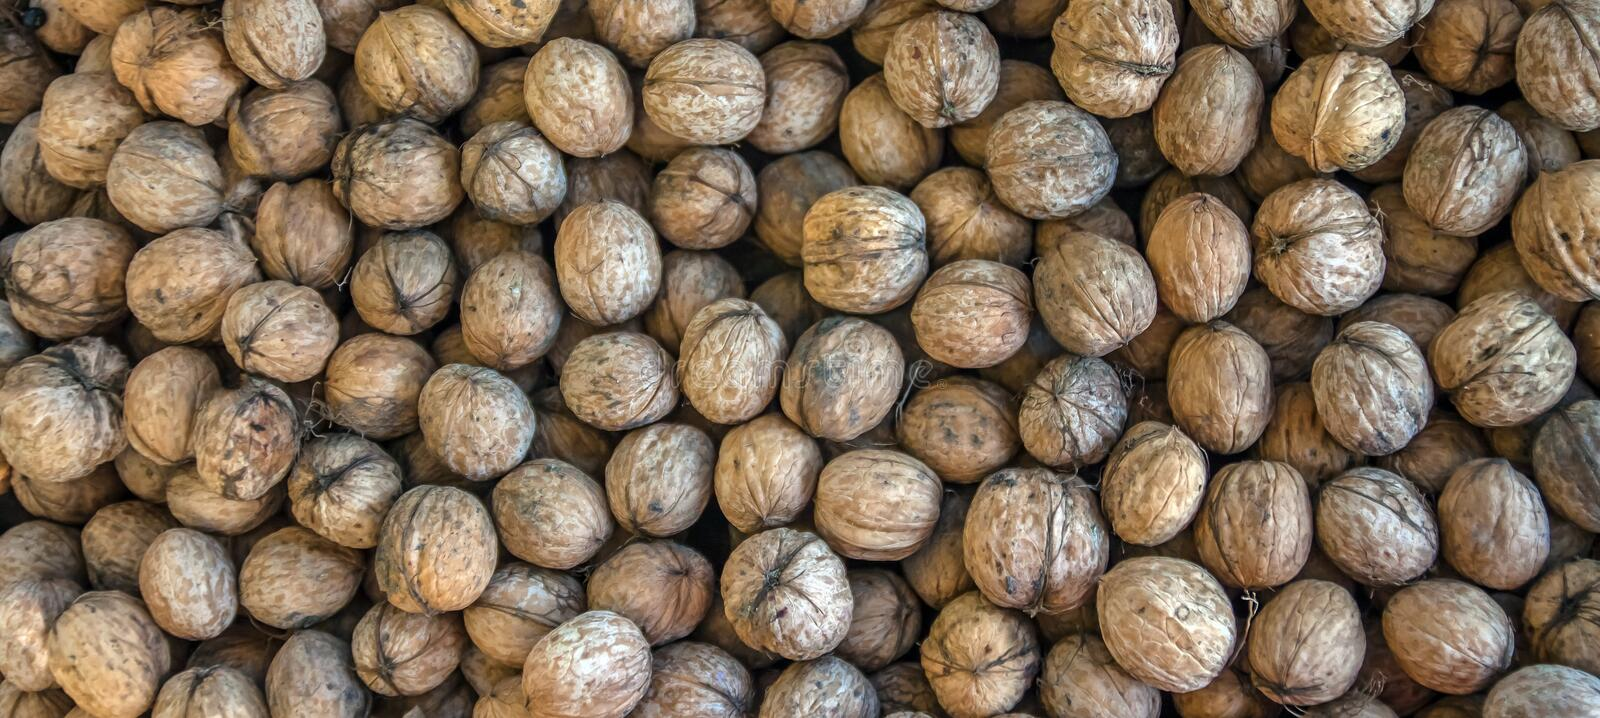 Natural walnut background pattern texture Abstract walnuts heap pattern background Blurred edges frame Natural food in-shell nuts royalty free stock images